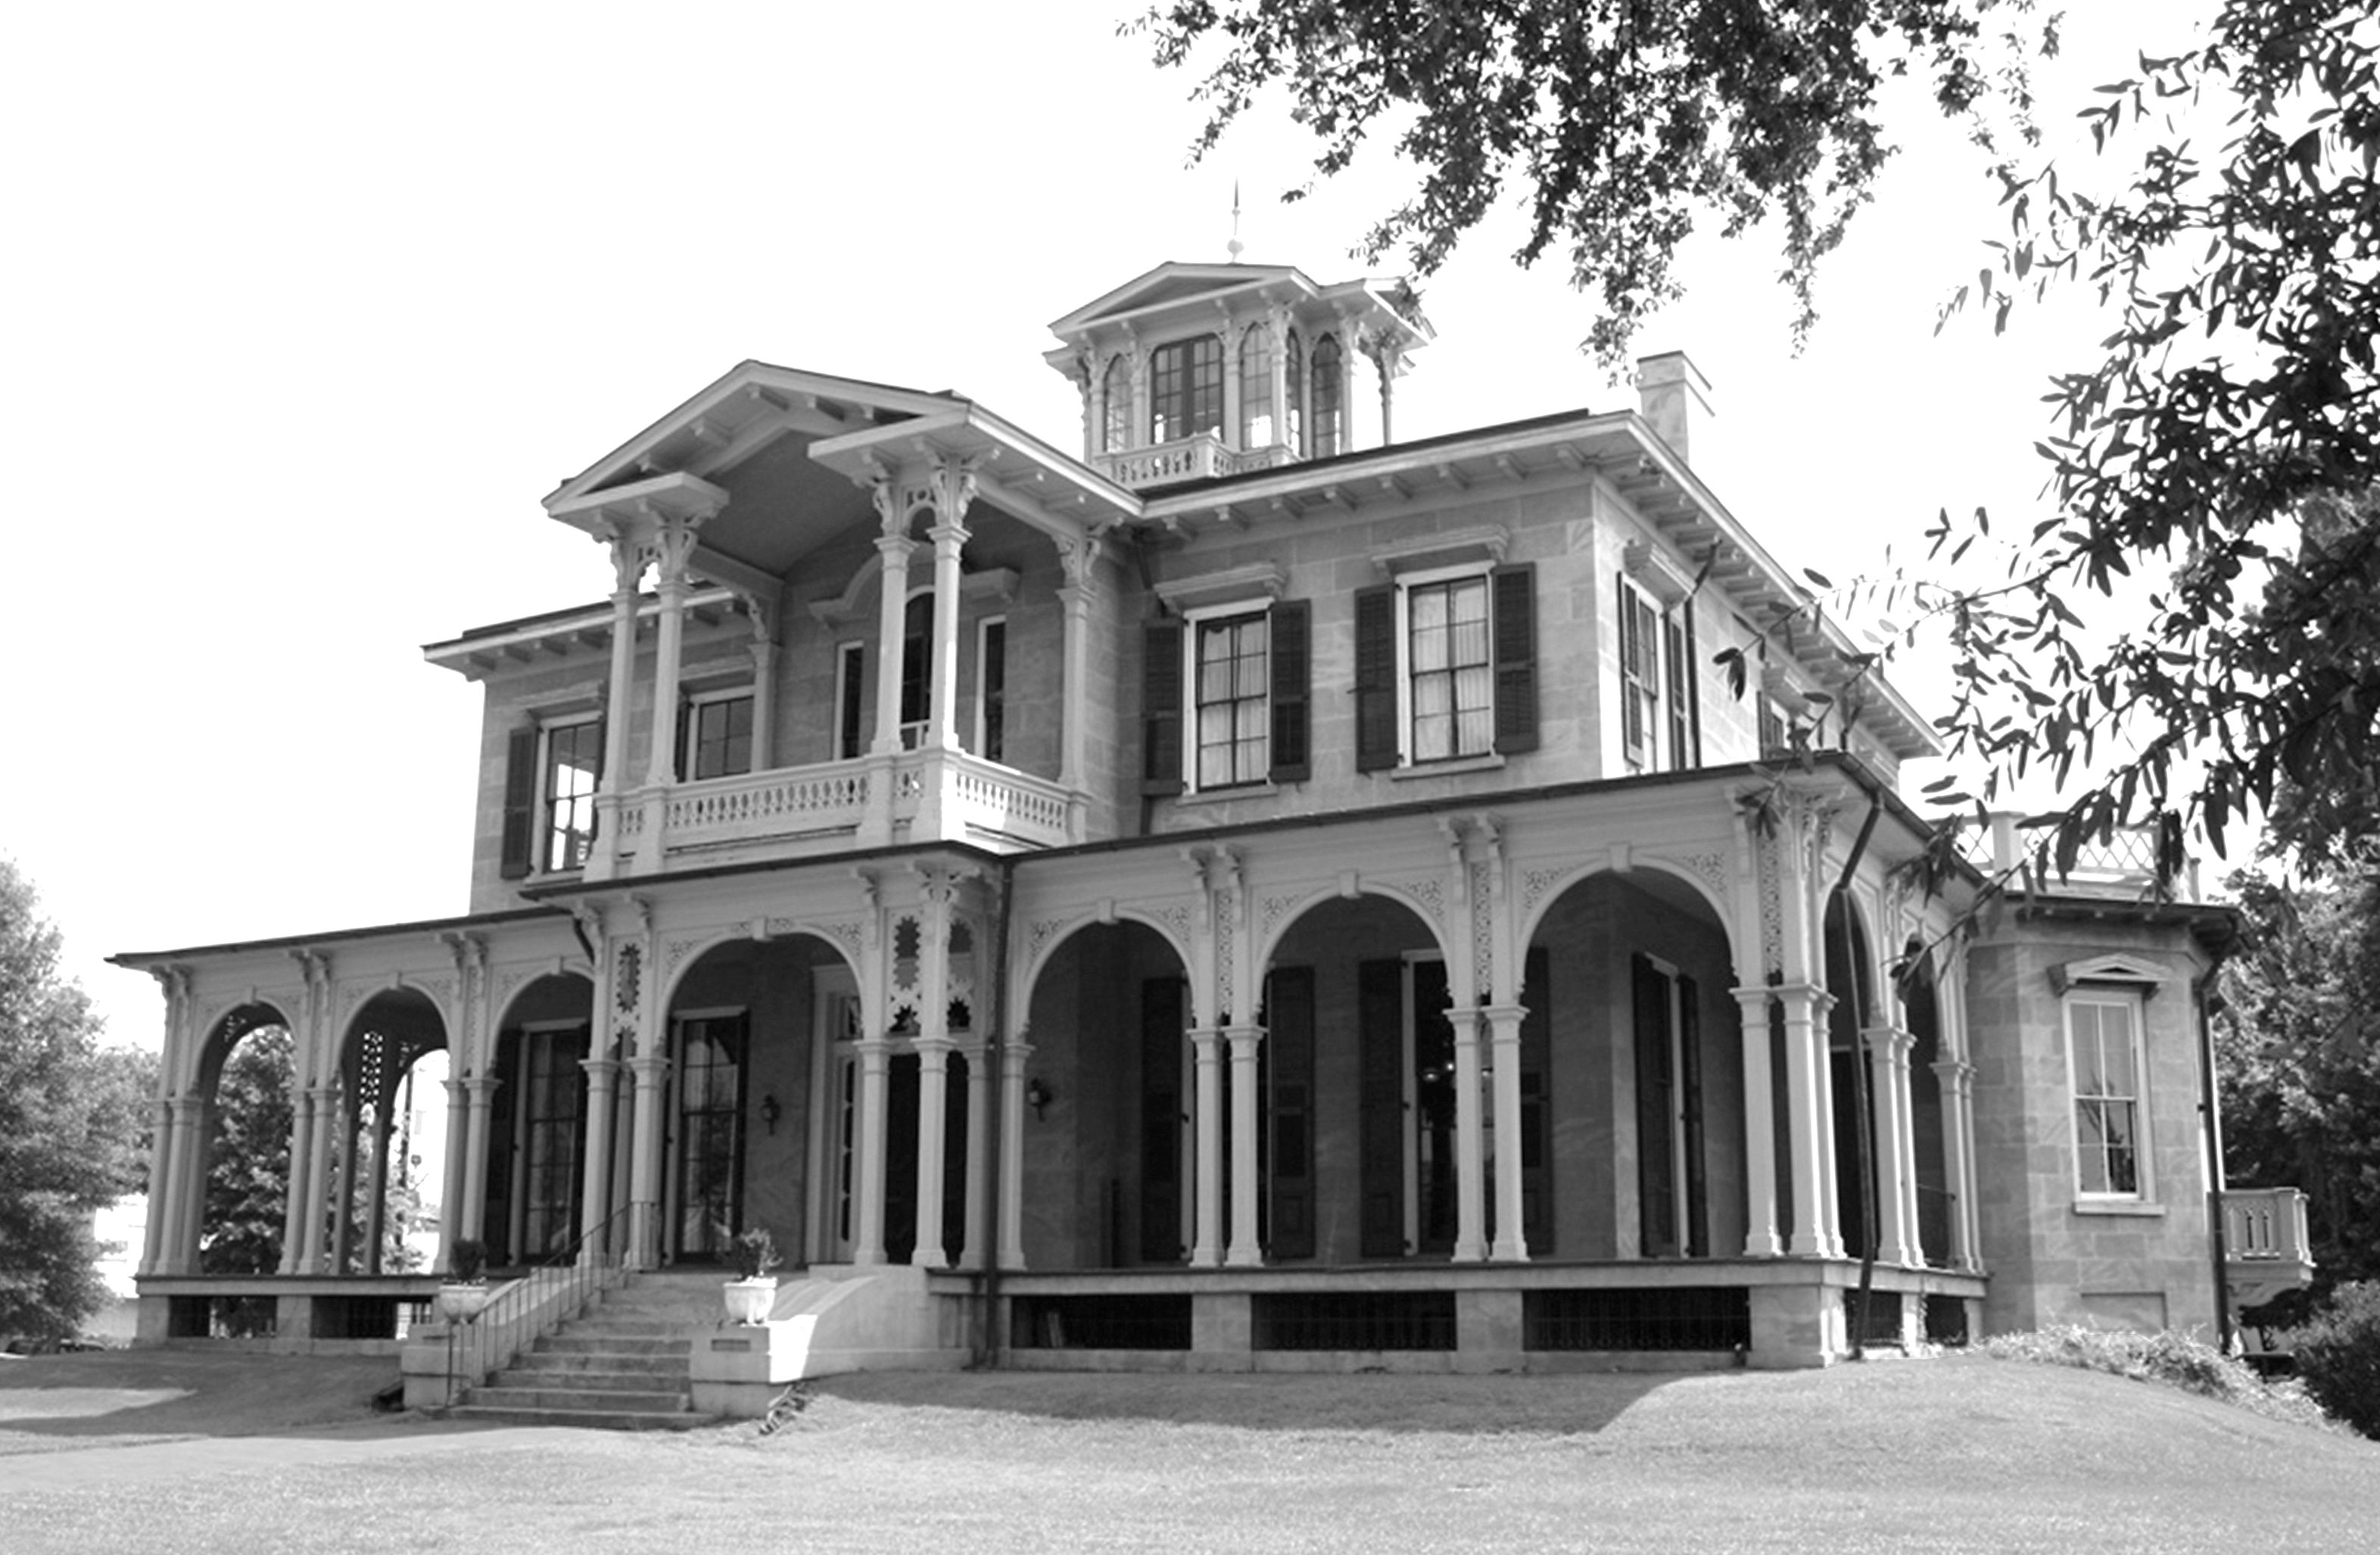 Jemison-Van de Graaf Mansion haunted ghost